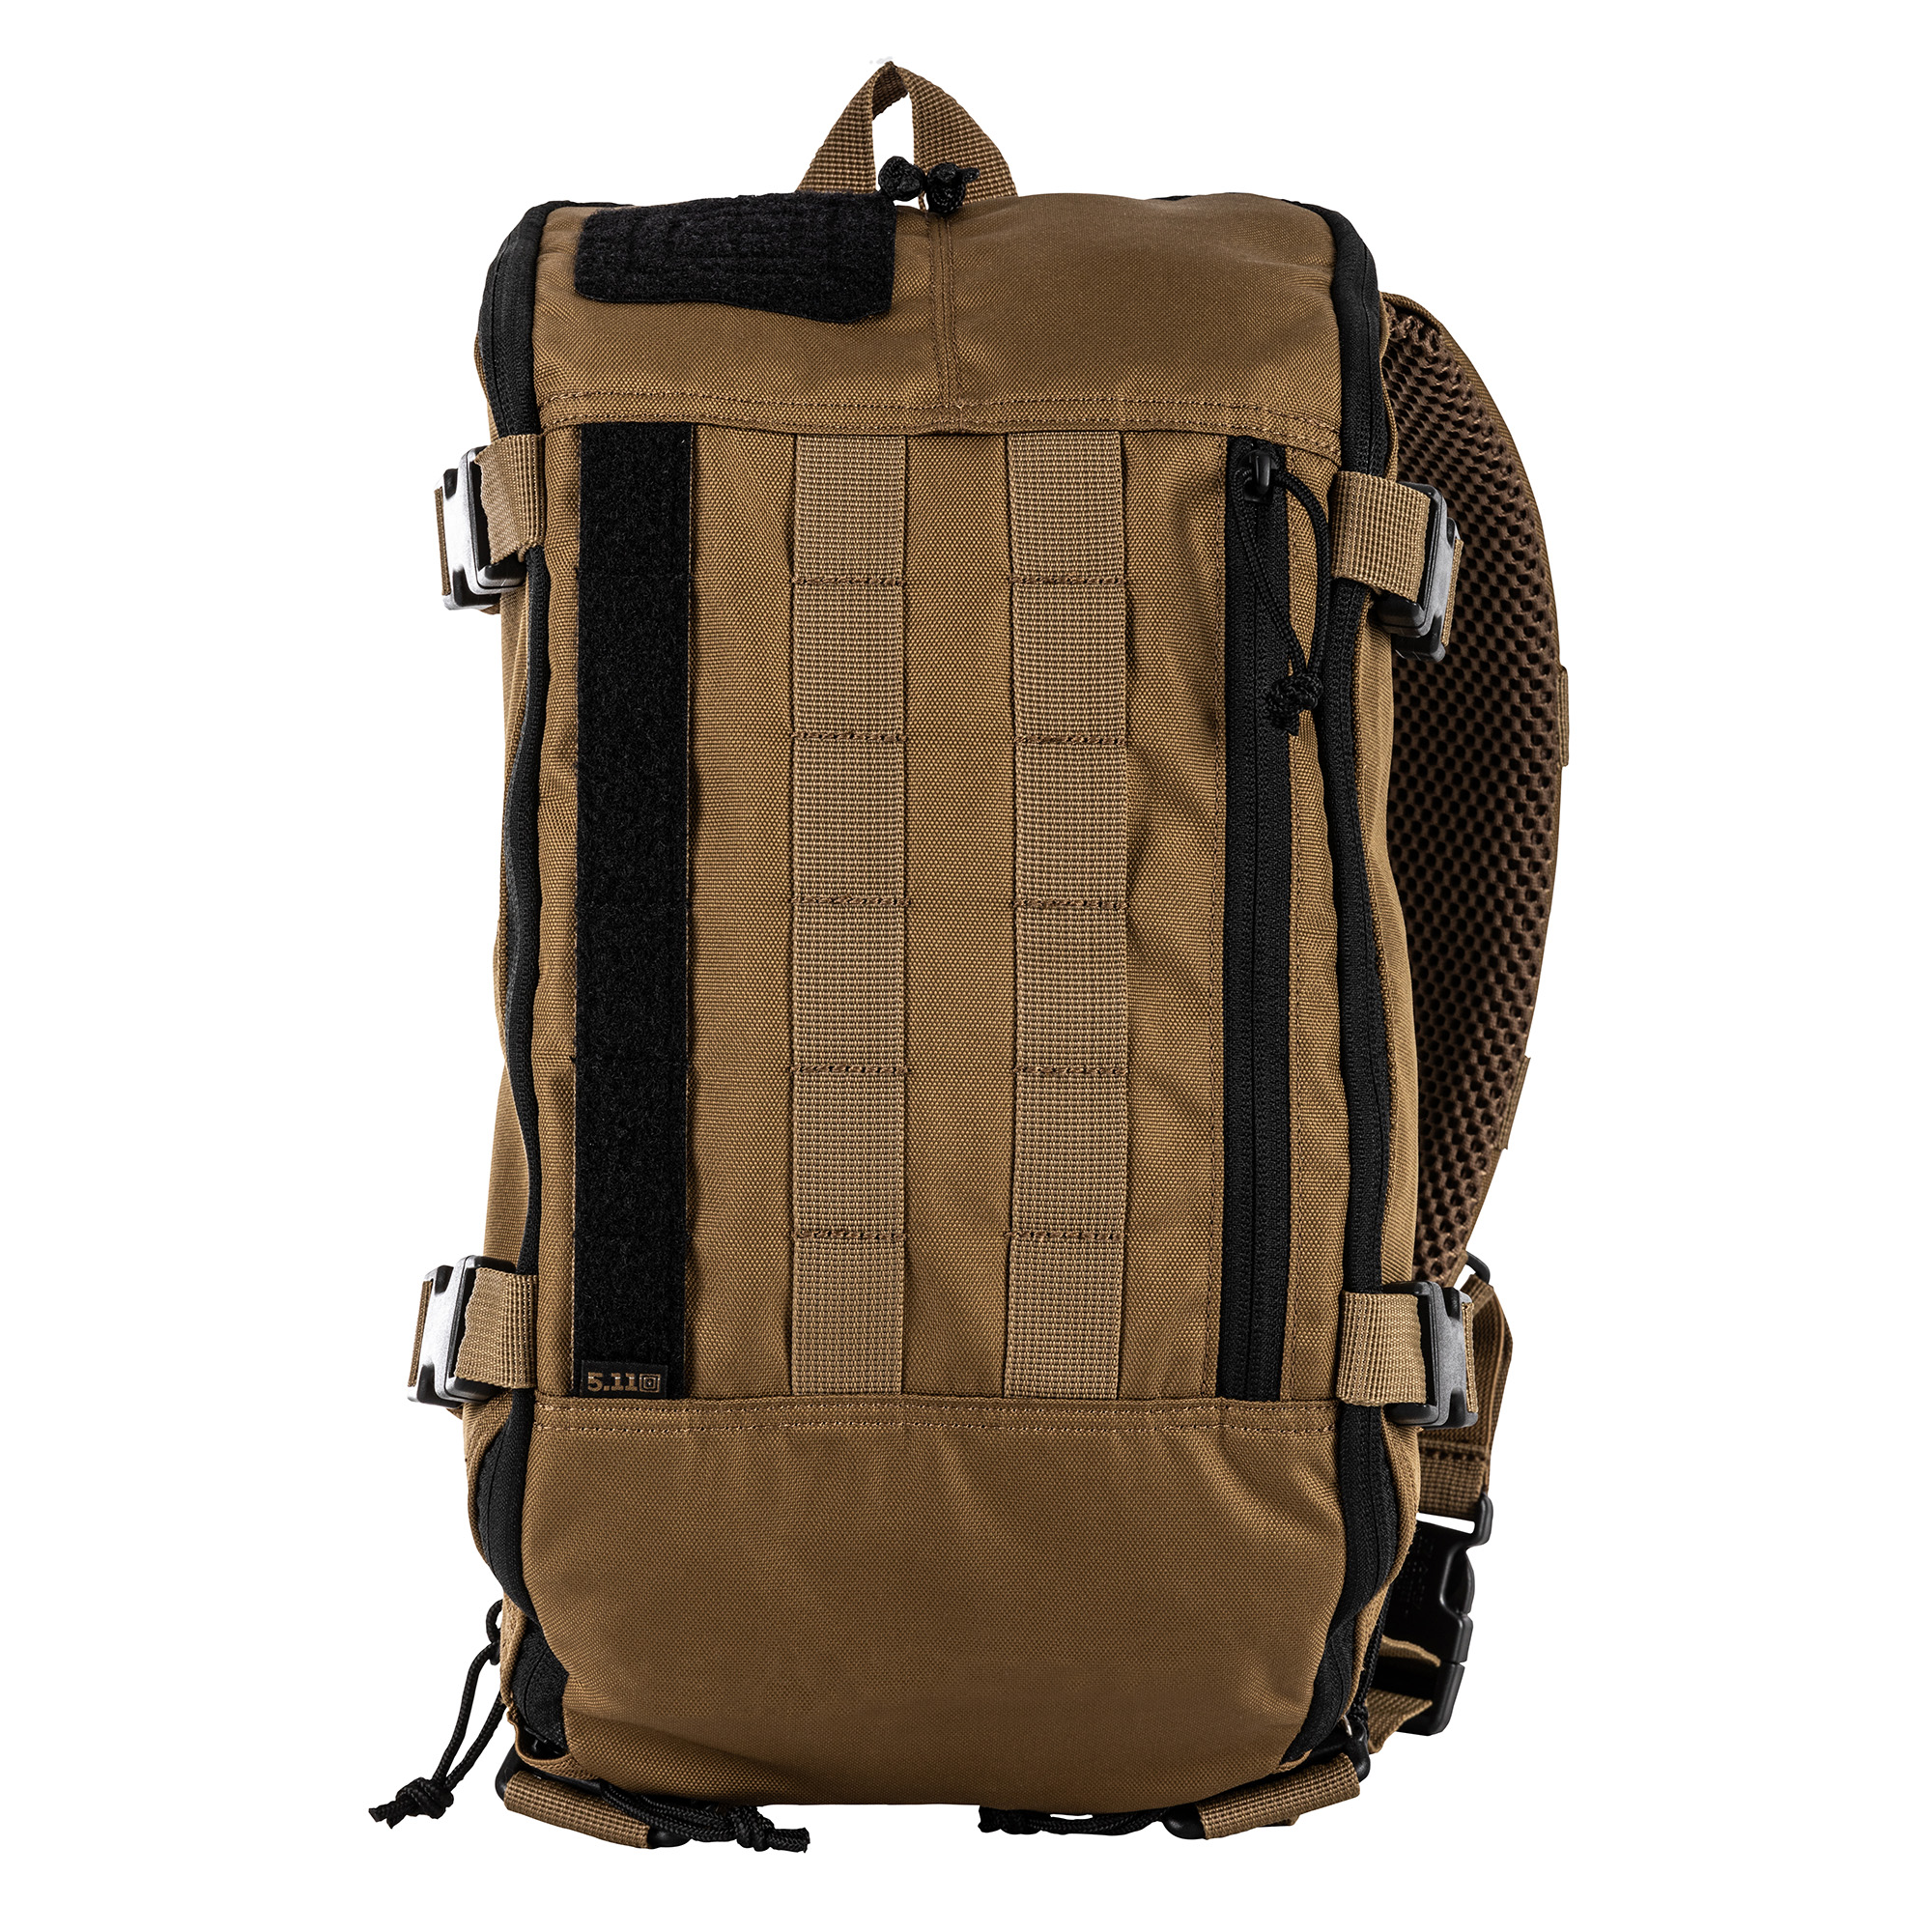 Túi 5.11 Tactical RAPID SLING PACK 10L - Kangaroo